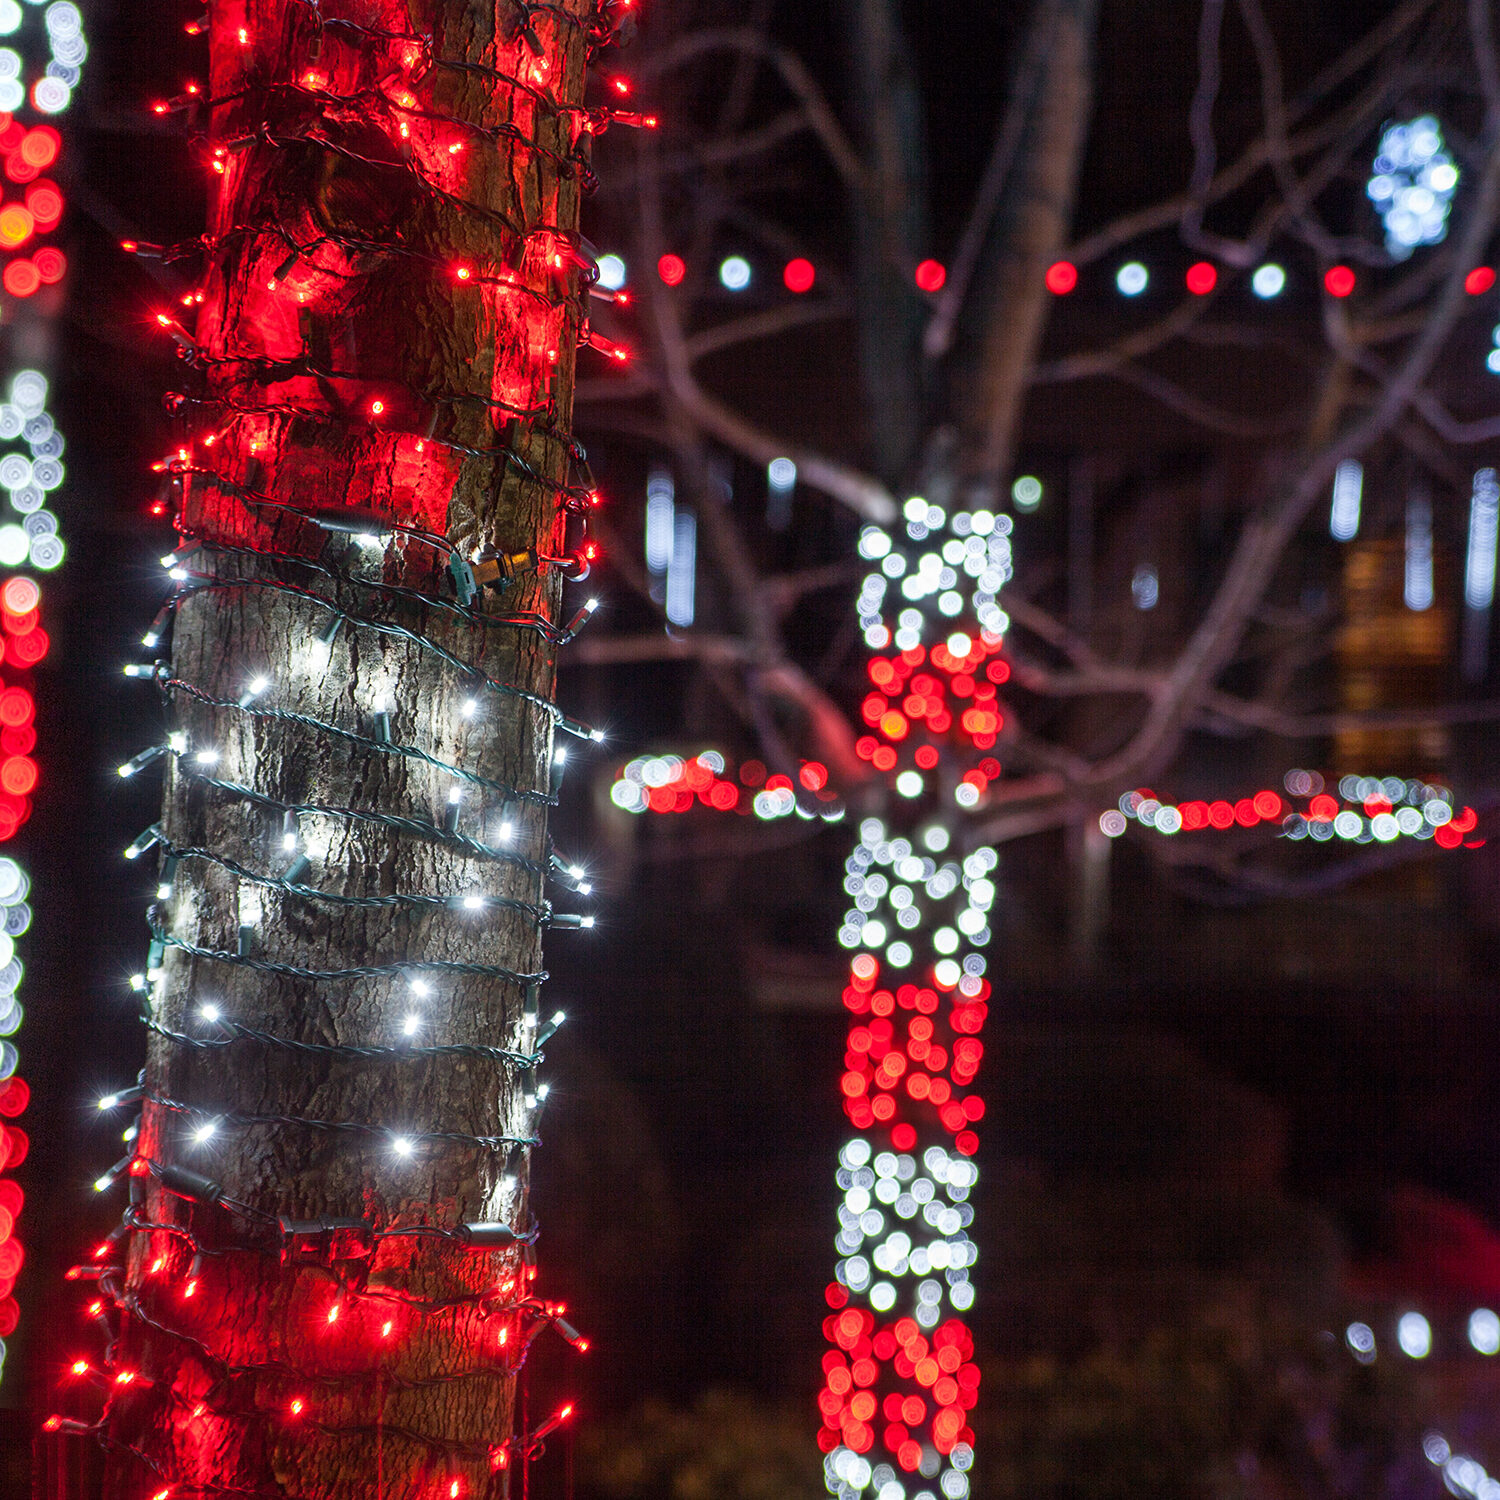 Outdoor trees wrapped with Christmas string lights